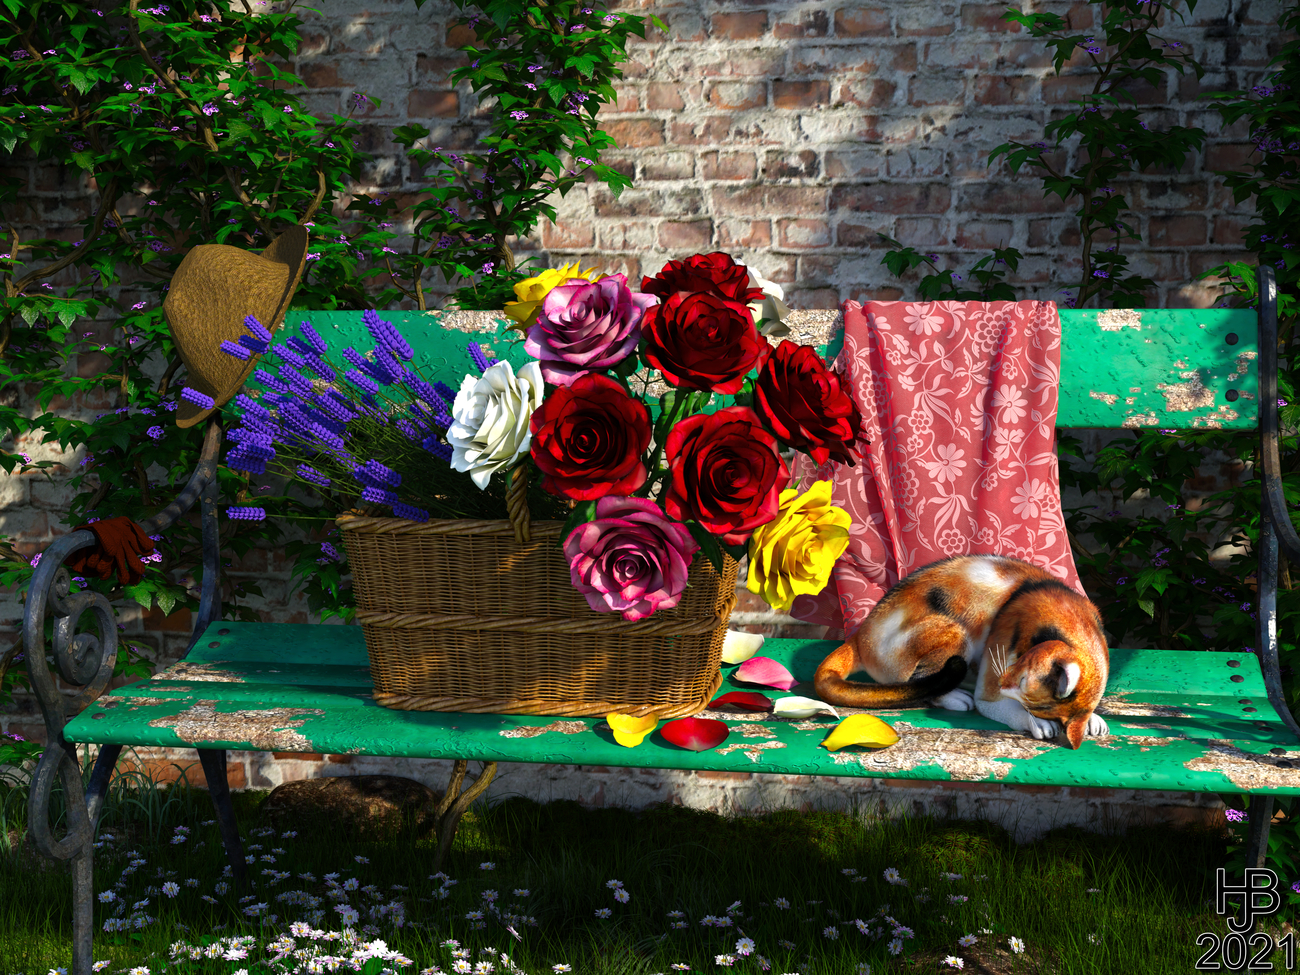 Bench with a basket full of flowers and a cat